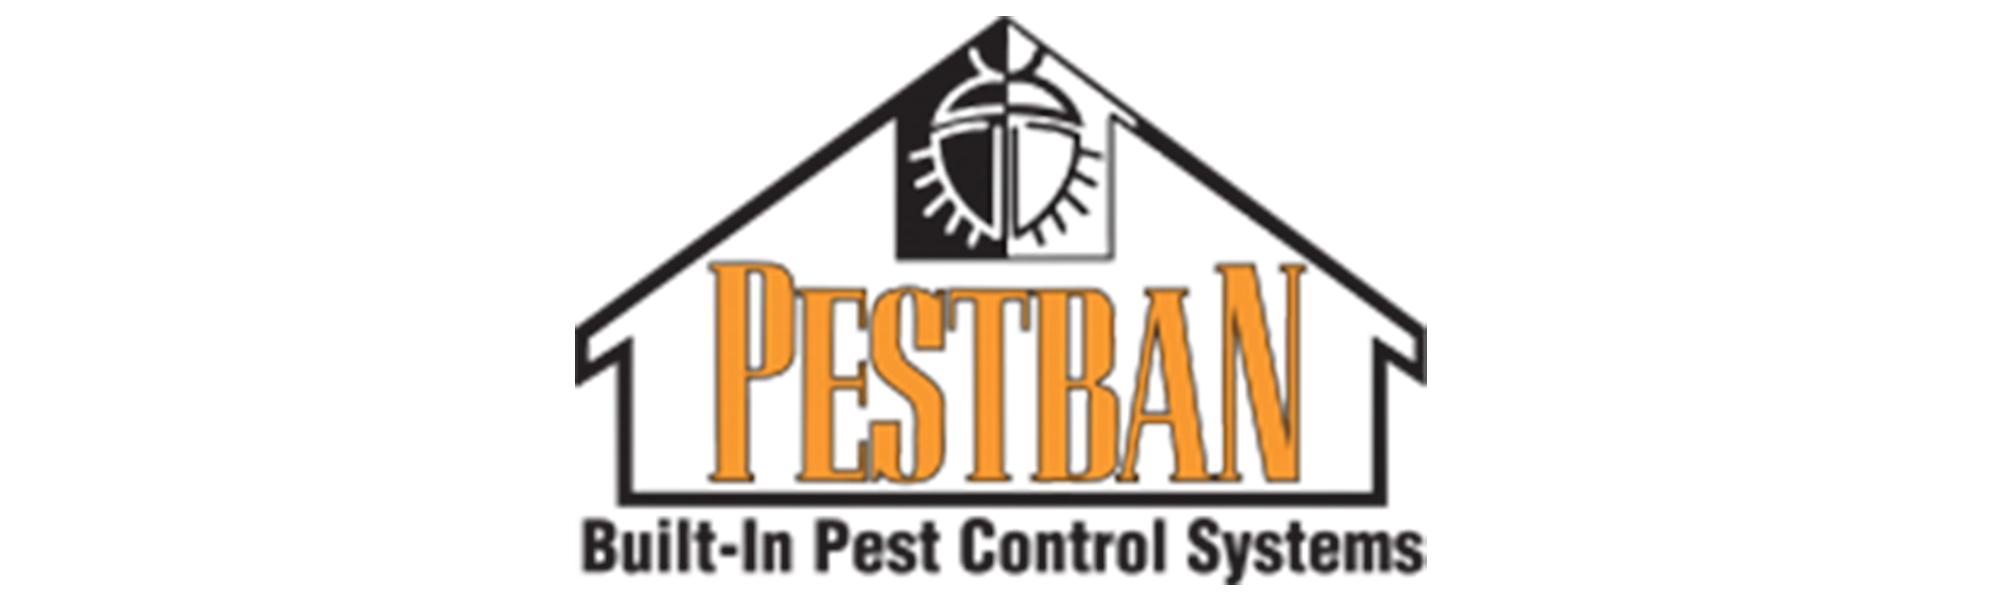 Pestban